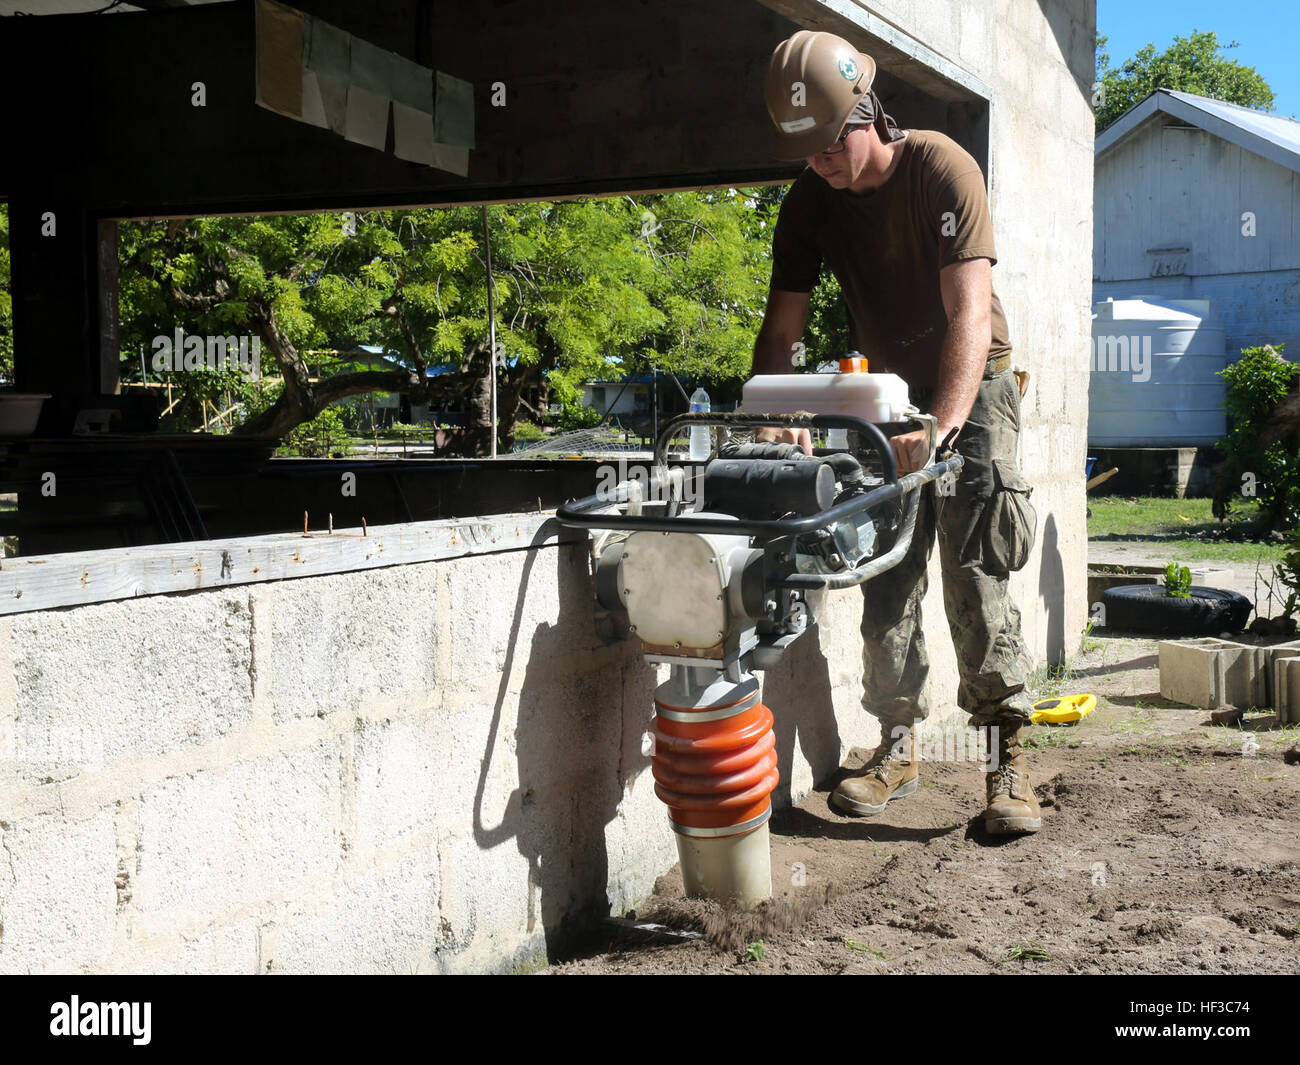 KIRABATI (June 3, 2015) – Builder 3rd Class Clint Siefers assist in remodeling a primary school as part of a of - Stock Image